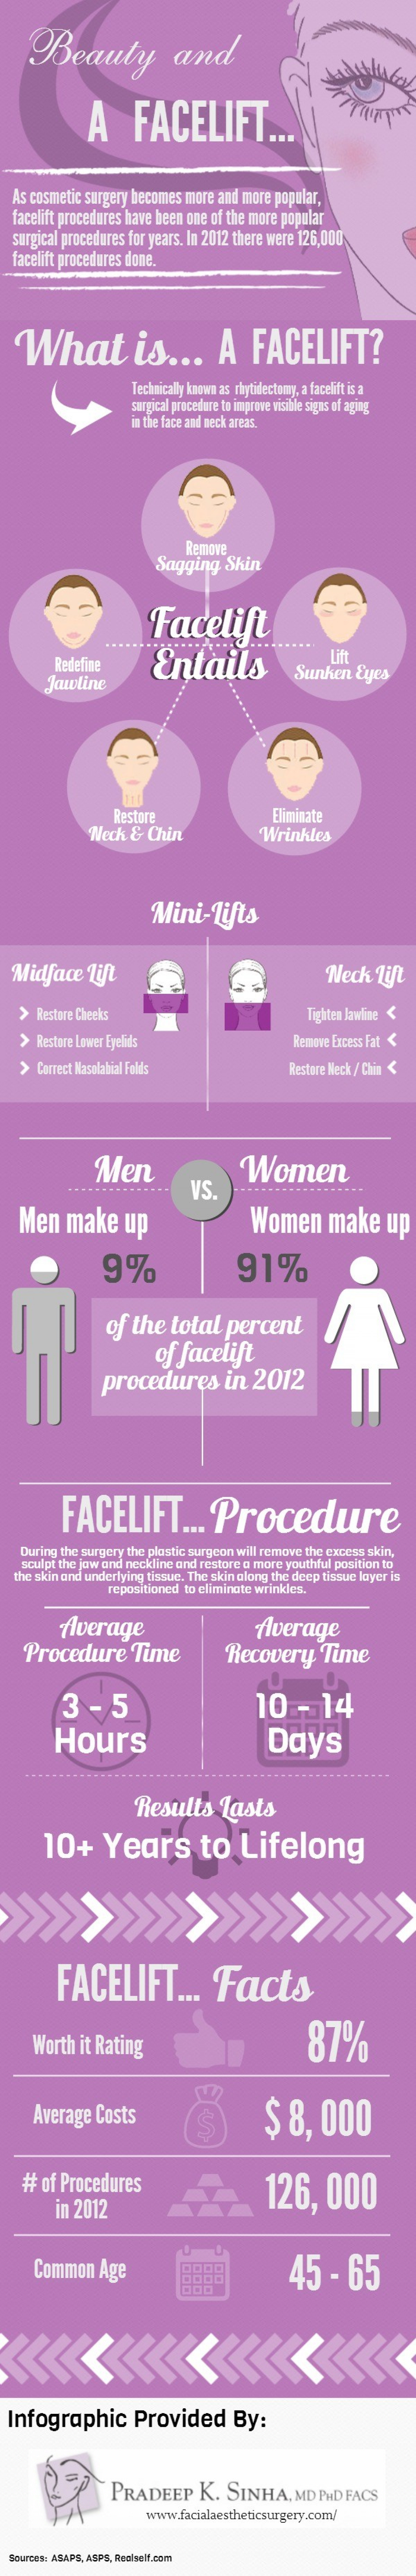 Beauty and a Facelift Infographic